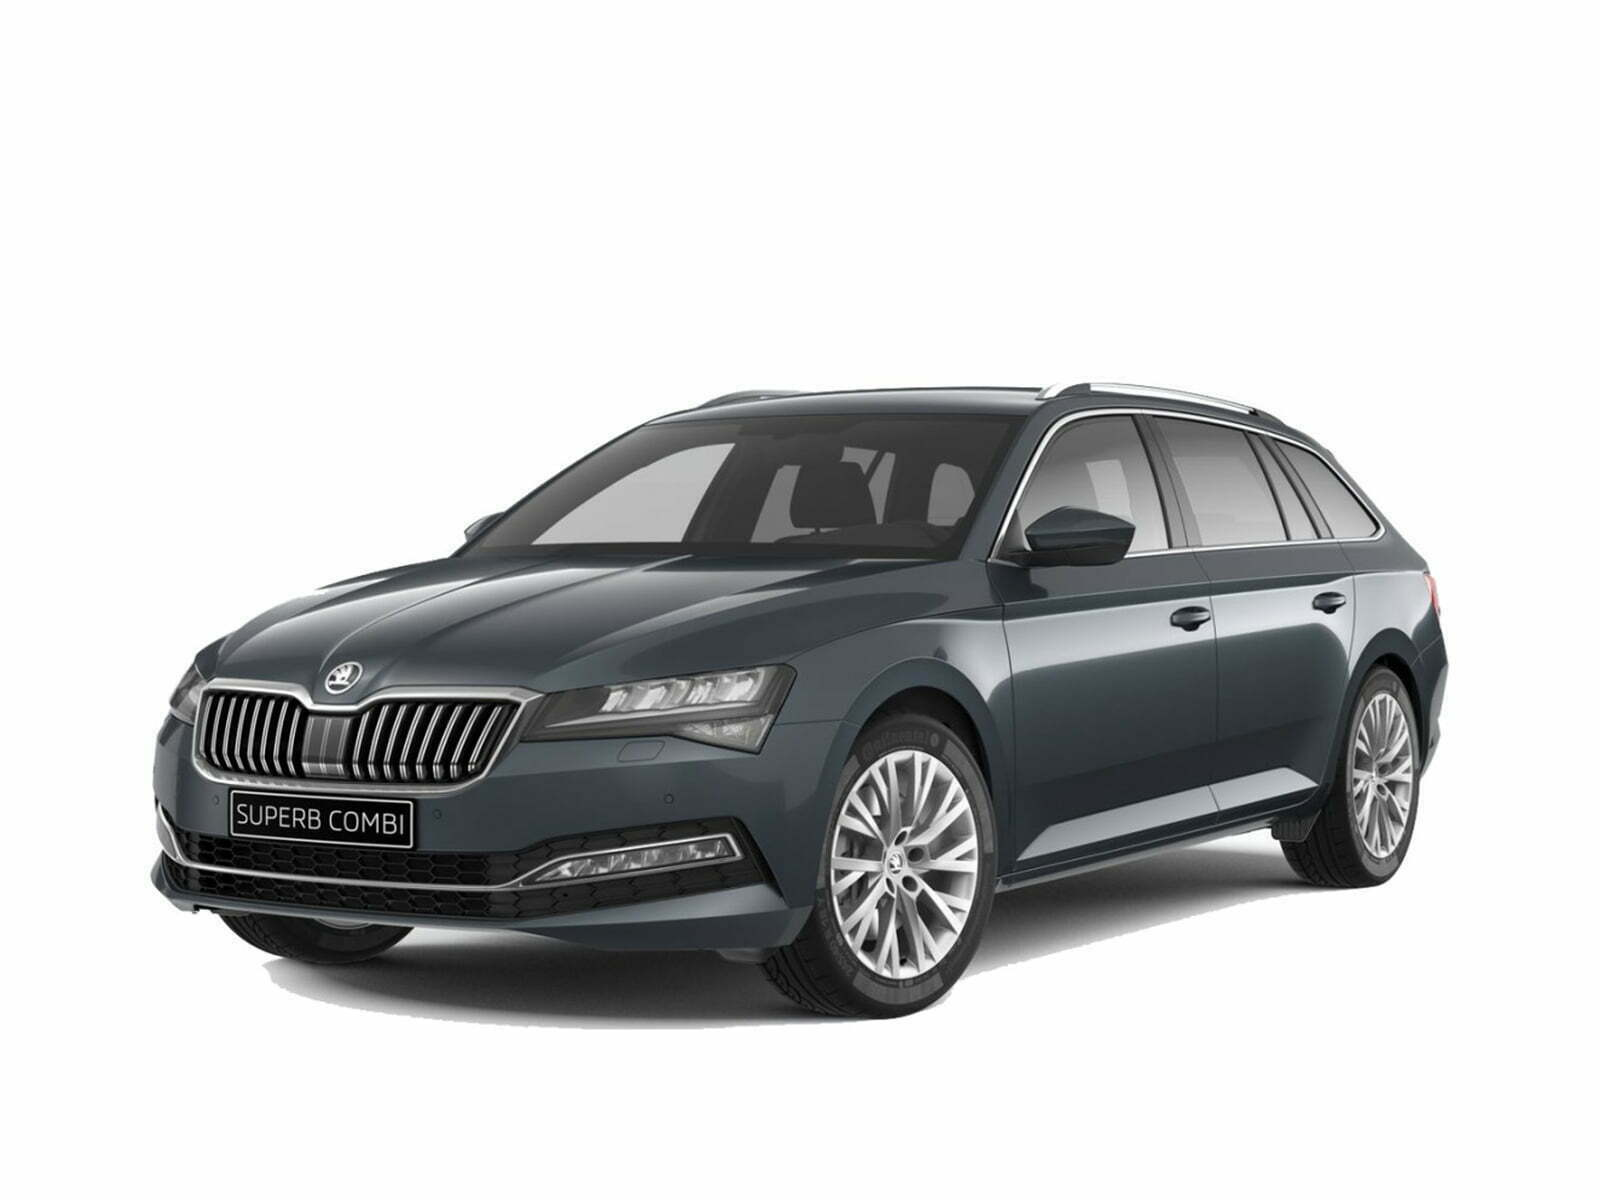 Skoda Superb Combi 1.5 TSI ACT 110kW/150pk DSG Business Edition 5d.